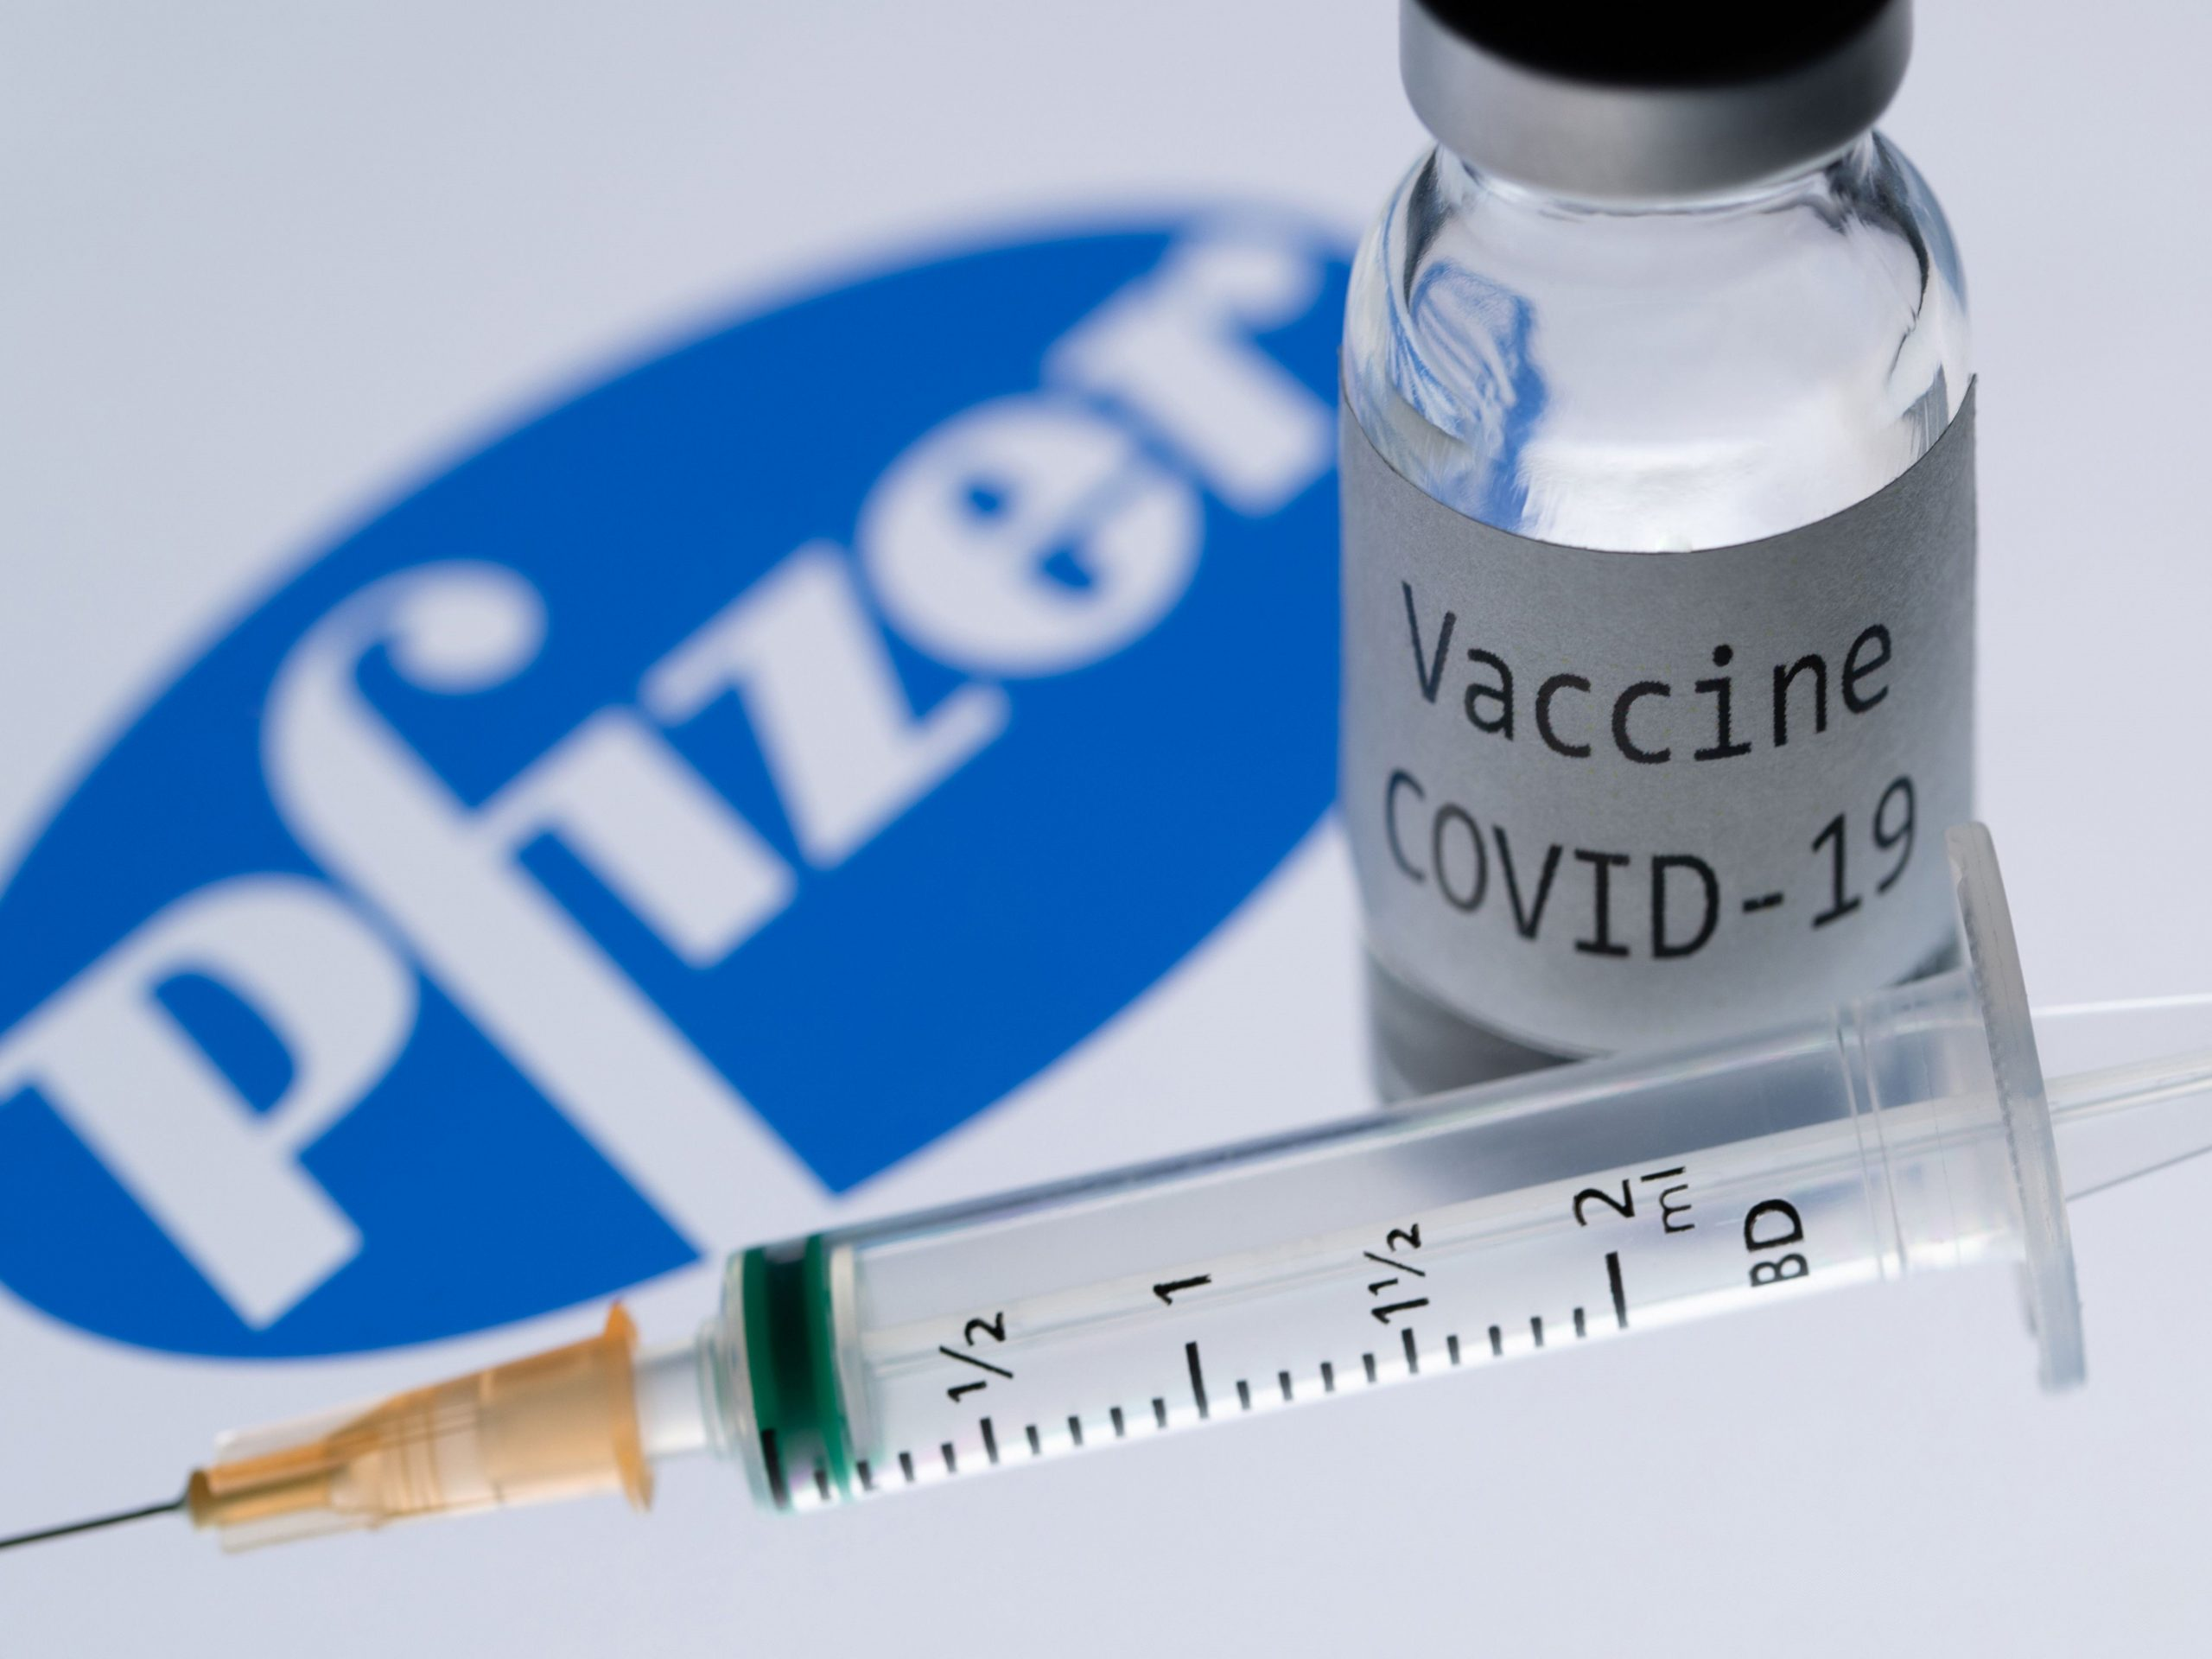 Coronavirus: A new list reveals who will get the vaccine first